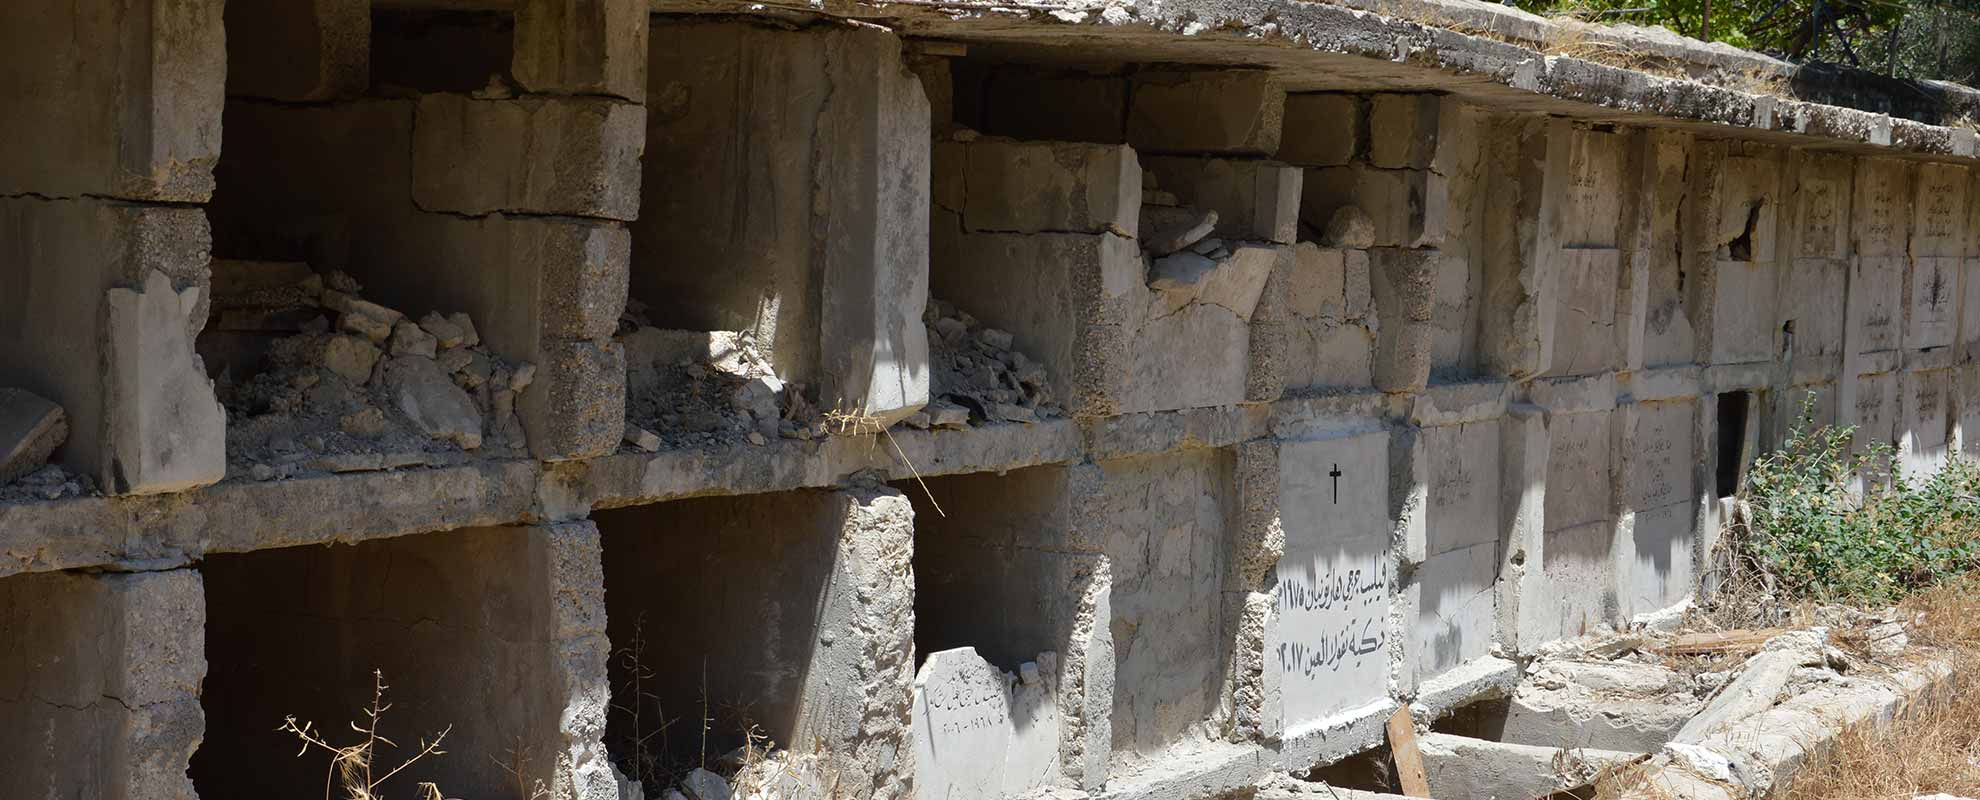 In Aleppo, not even the dead can rest in peace